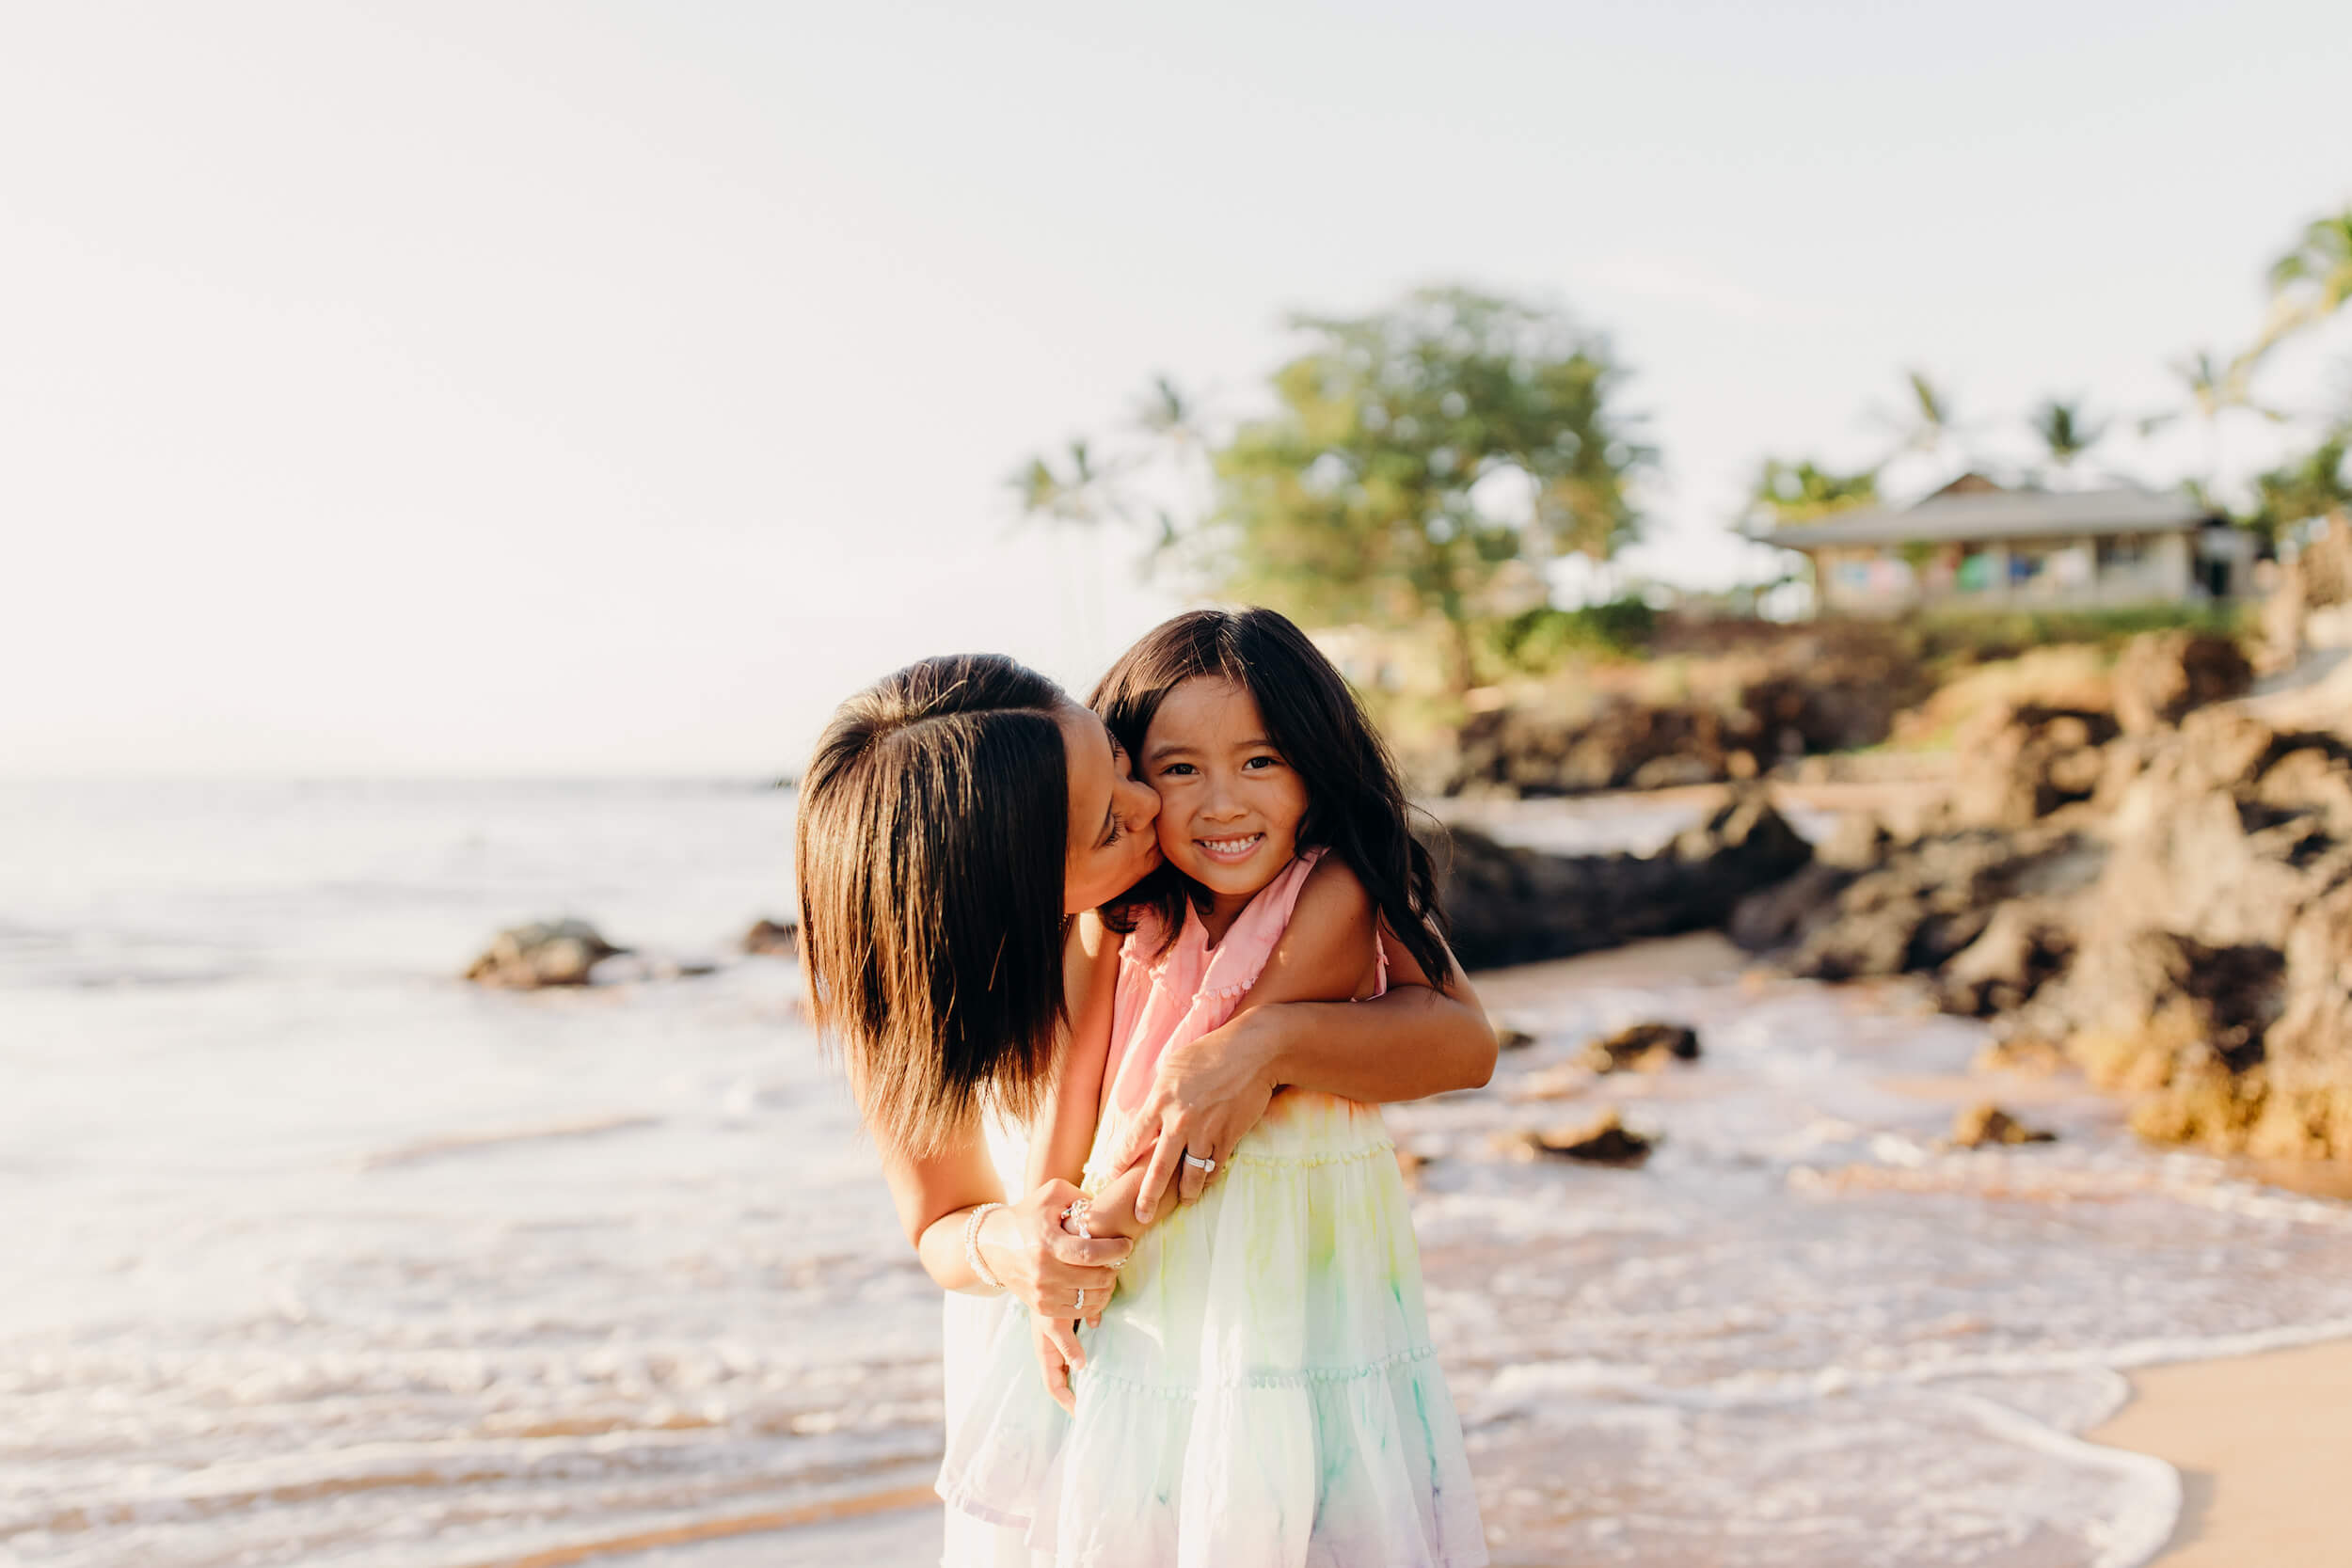 Mother kissing her daughter on the cheek on a beach in Maui